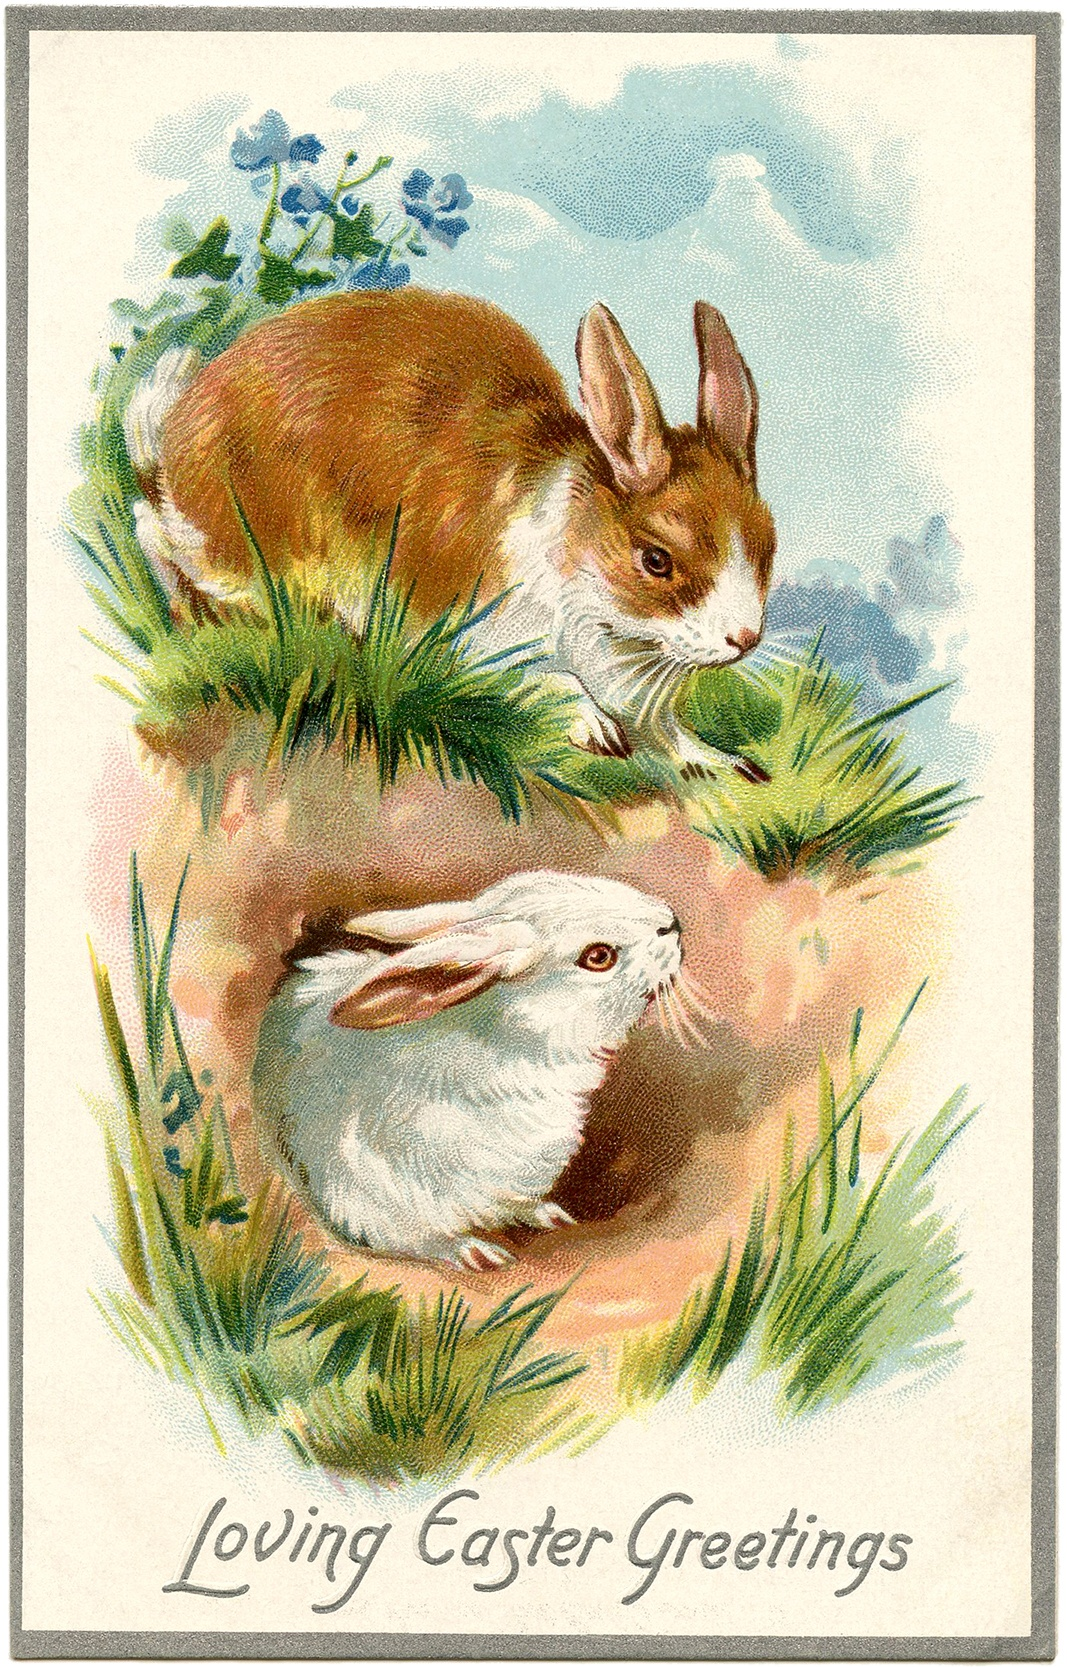 21 Easter Bunny Images Free - Updated! - The Graphics Fairy - Free Printable Vintage Easter Images